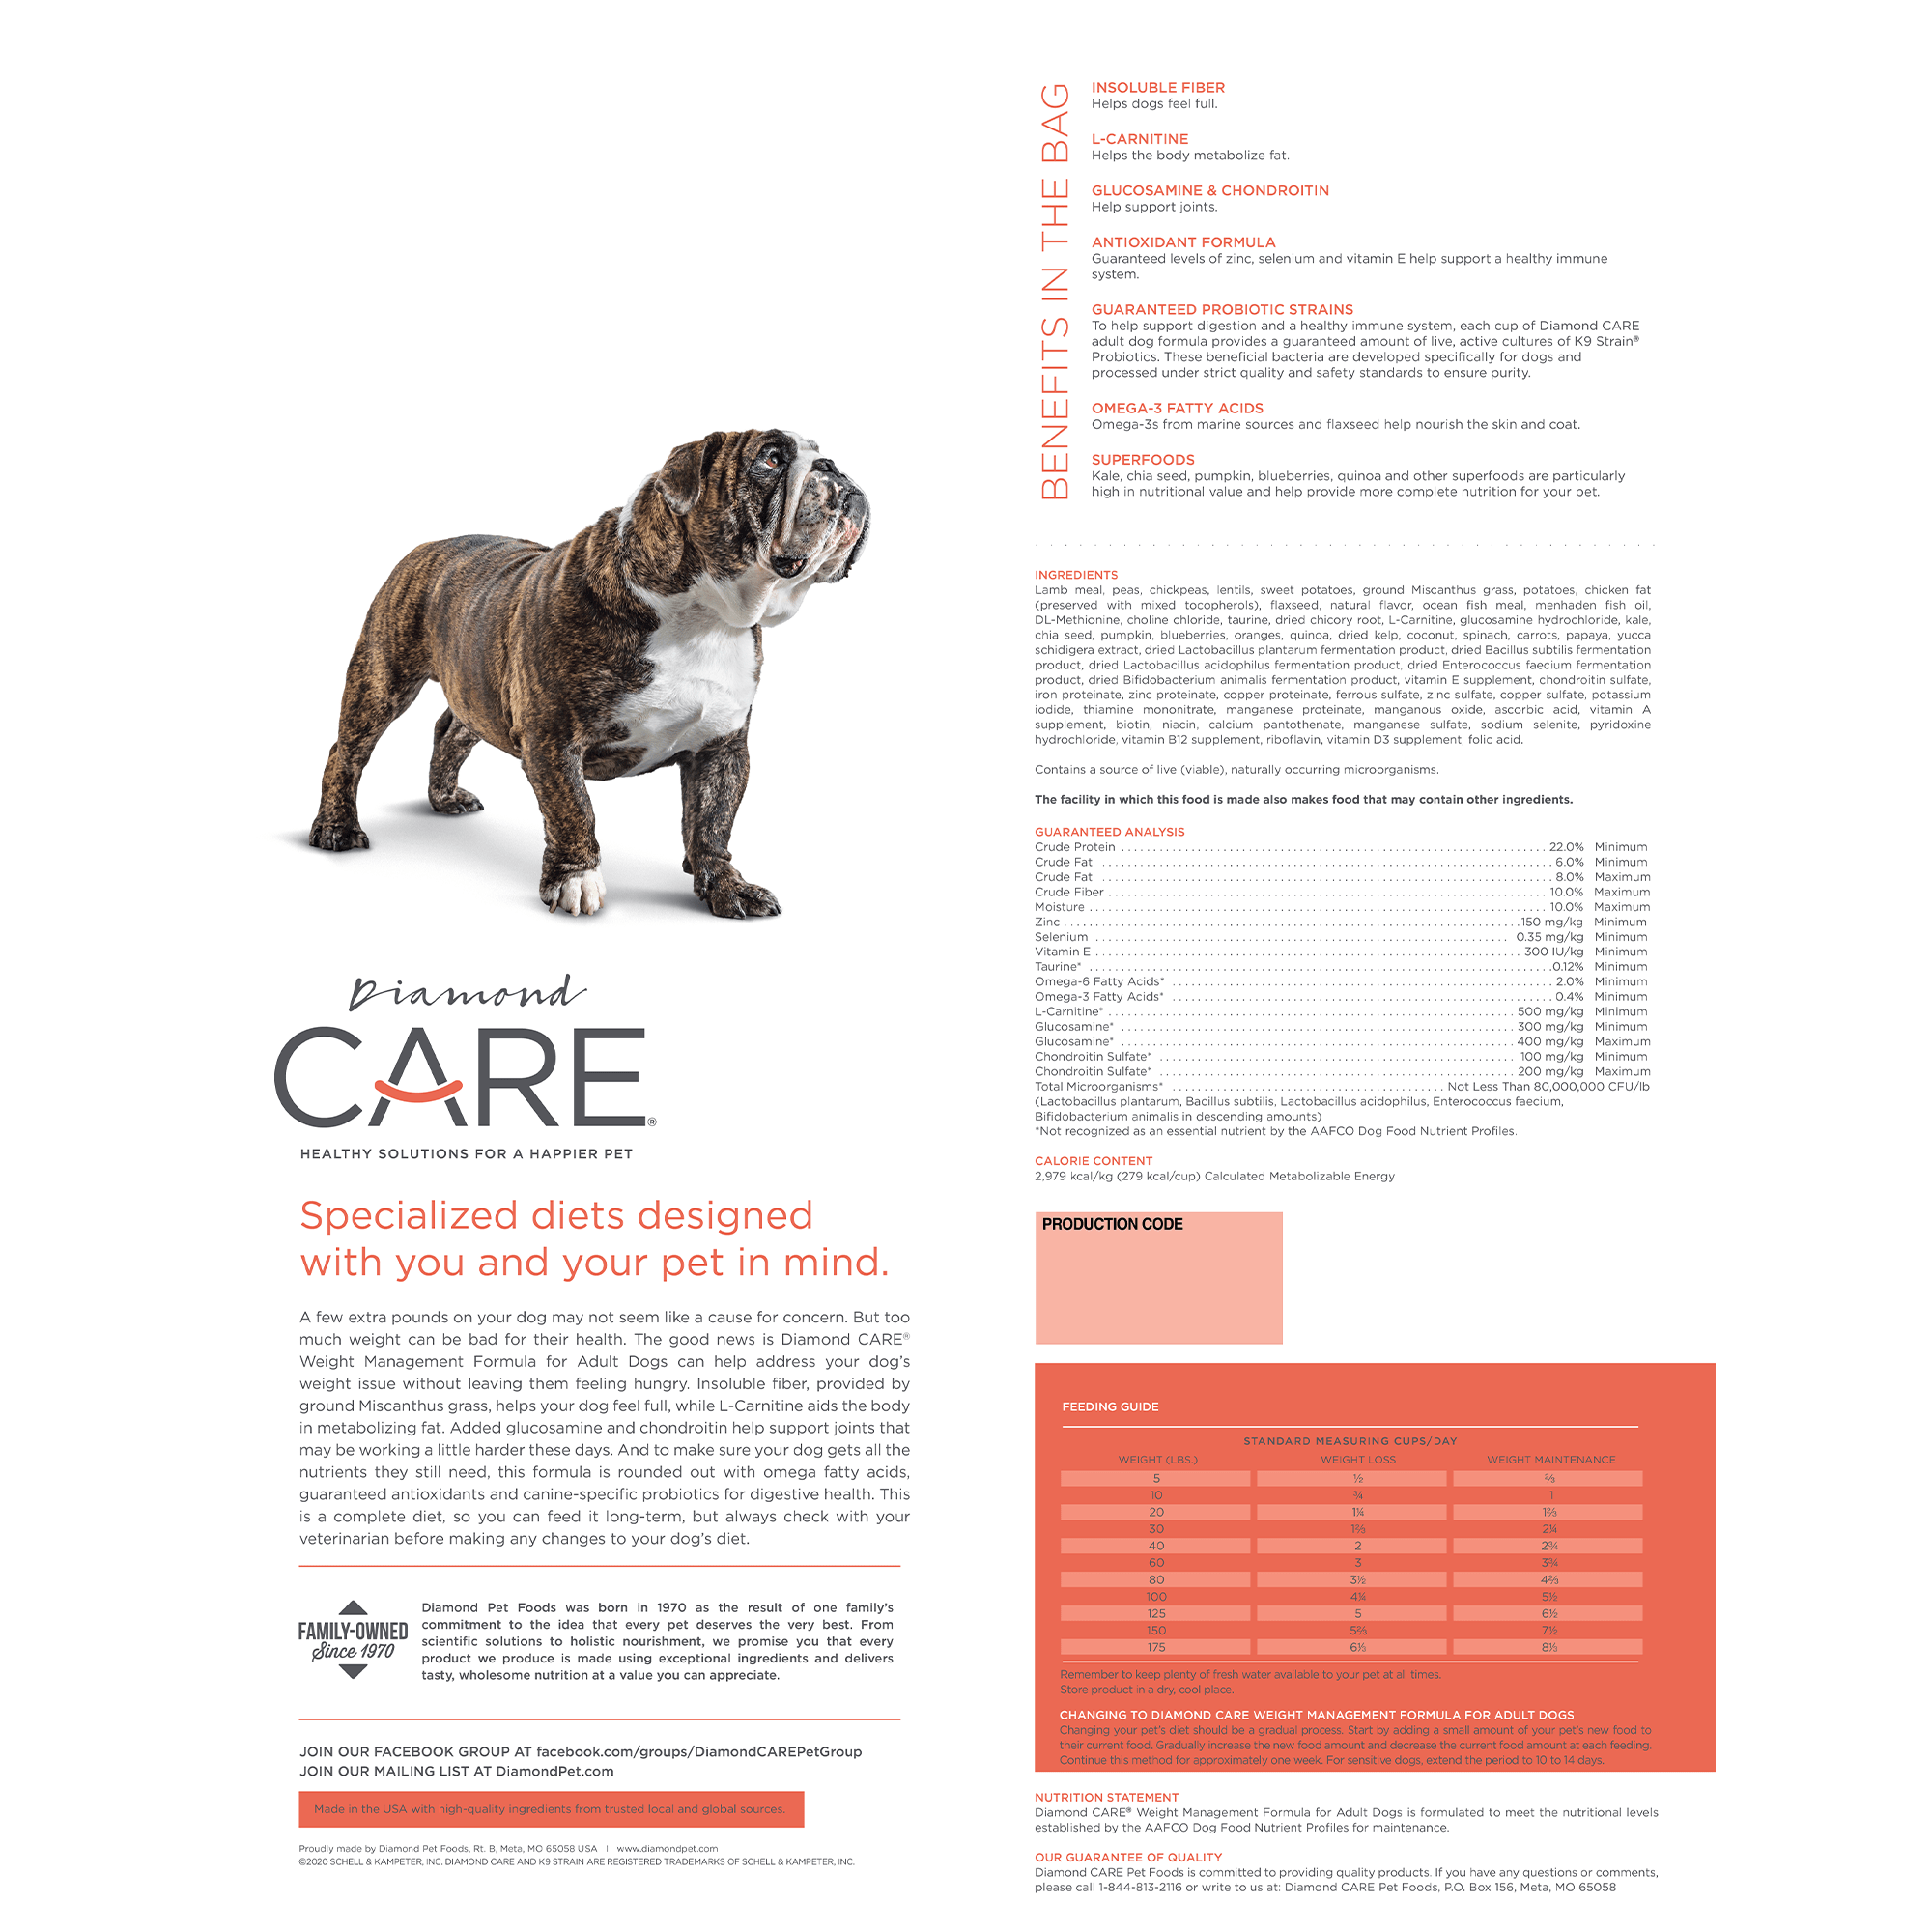 Diamond CARE Weight Management Formula for Adult Dogs Bag Back | Diamond Pet Foods